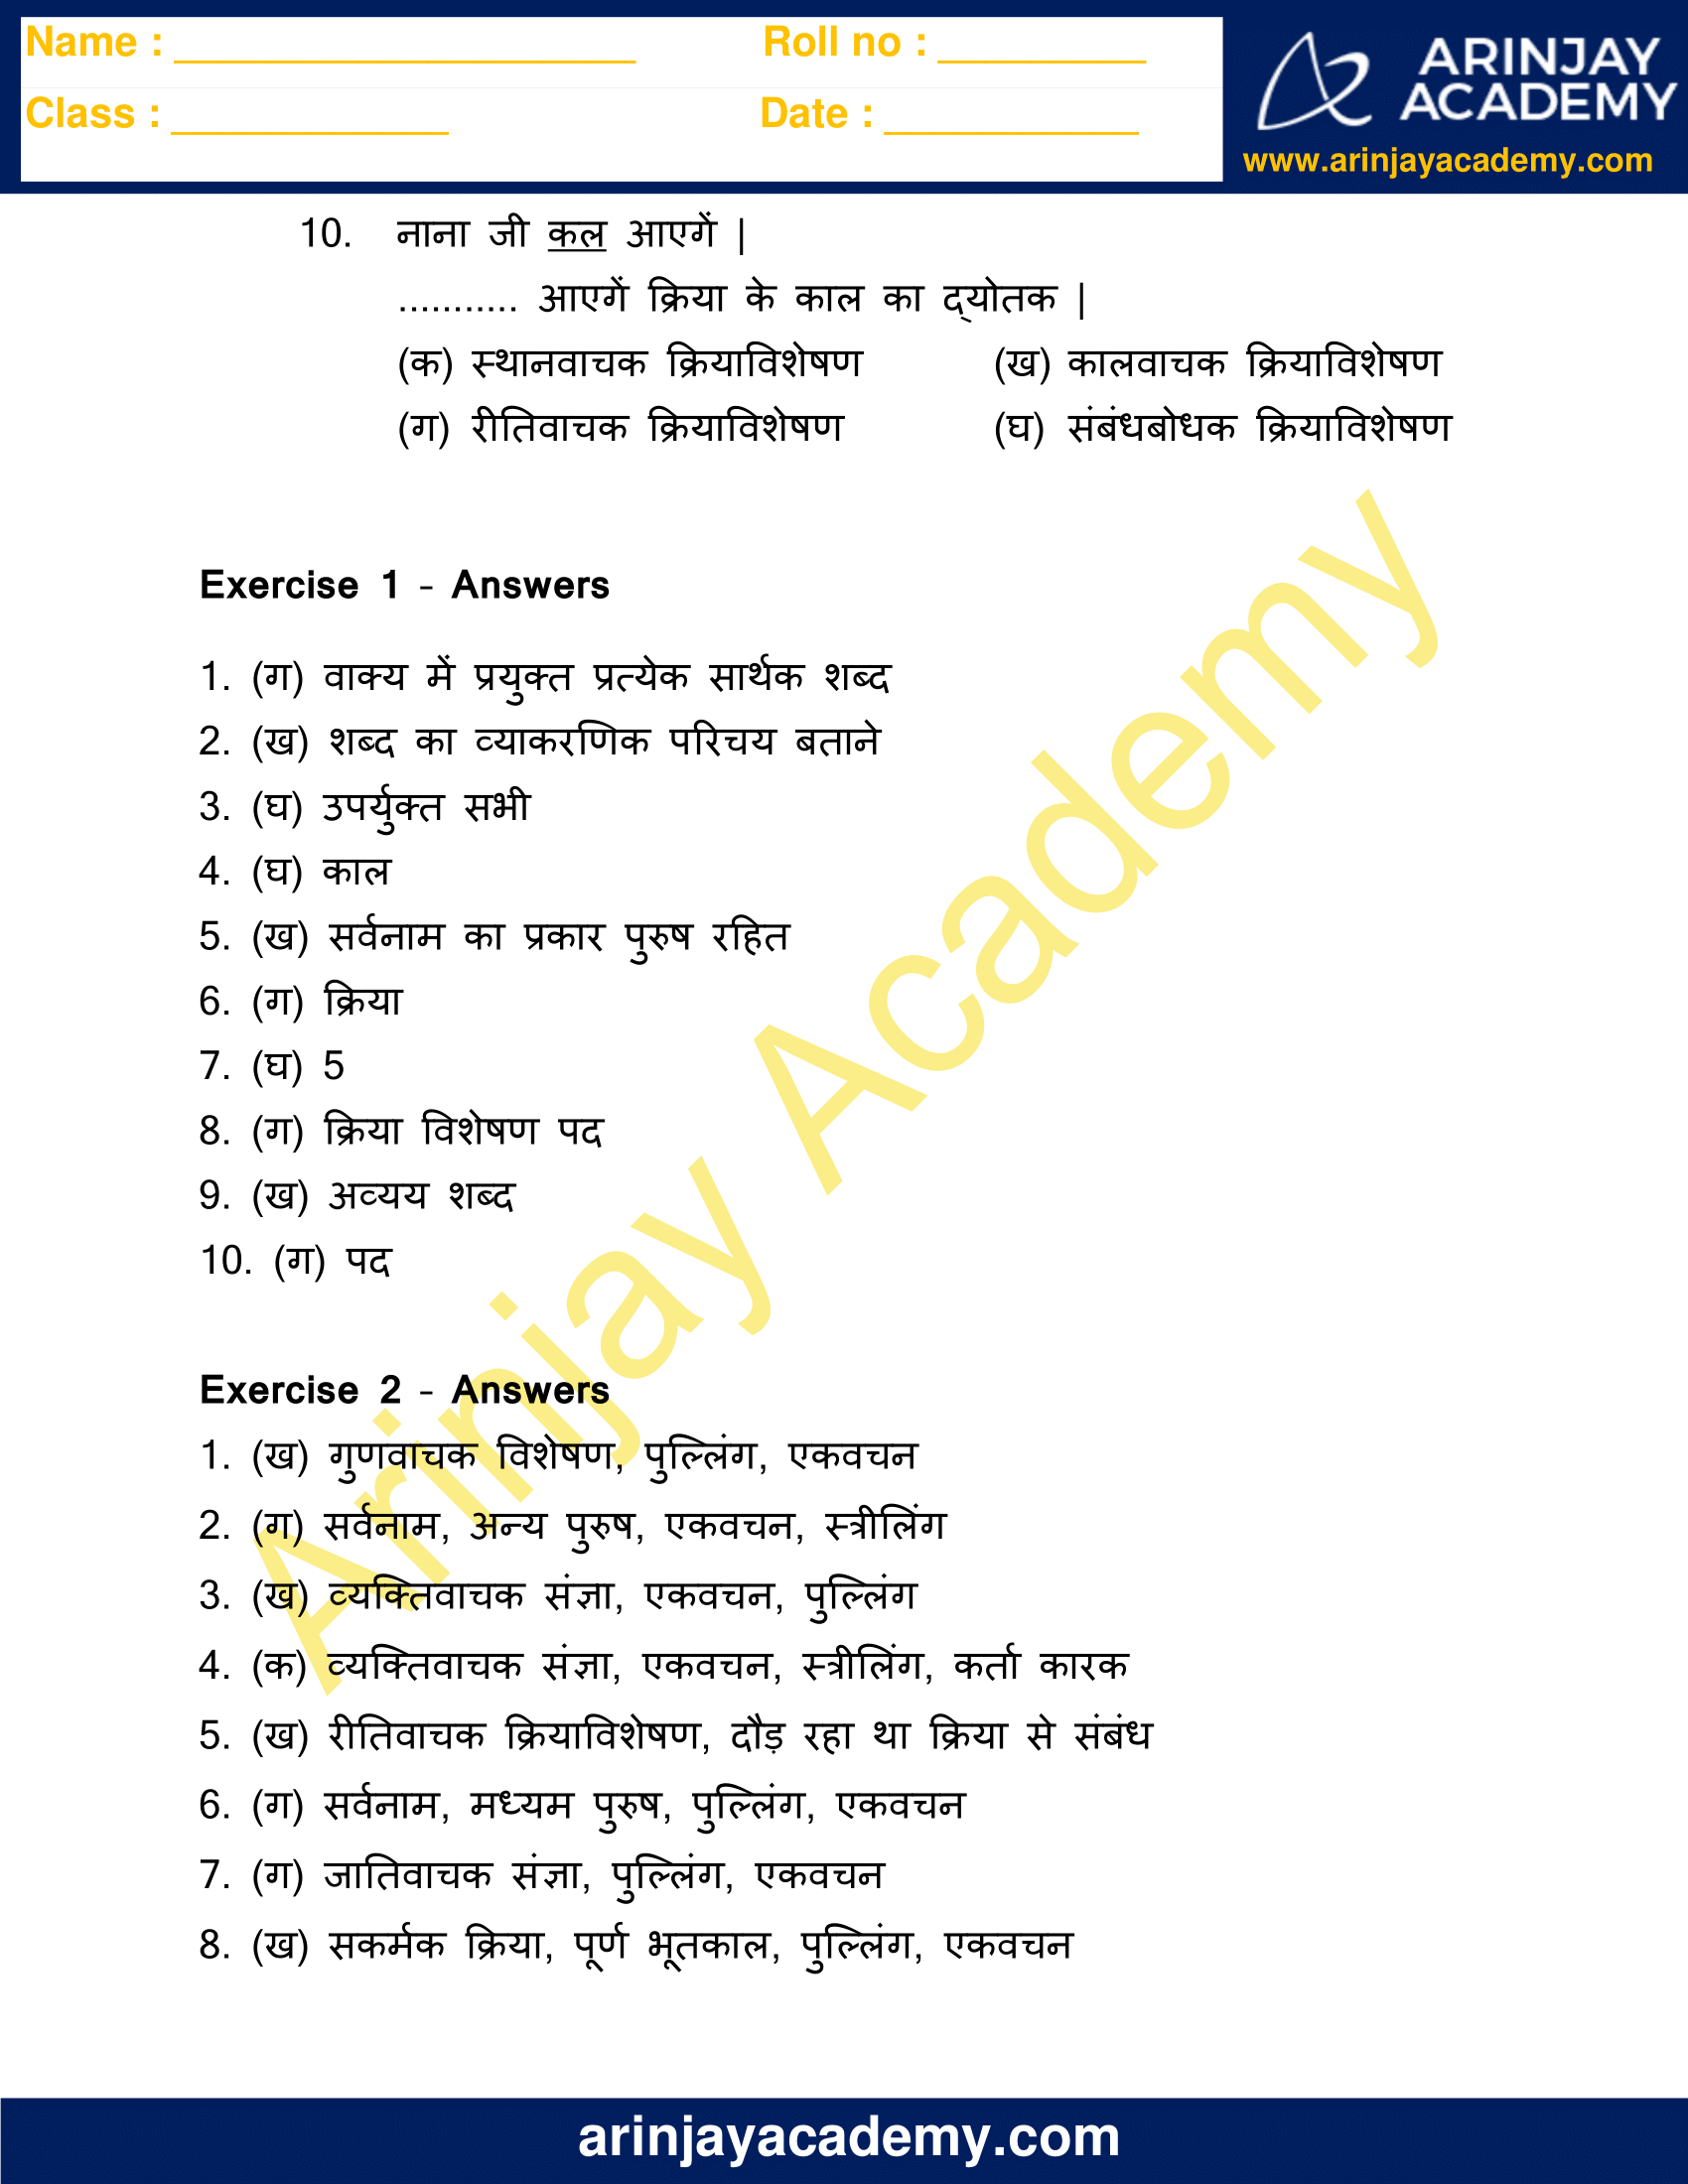 Pad Parichay Exercises with Answers Class 10 image 6